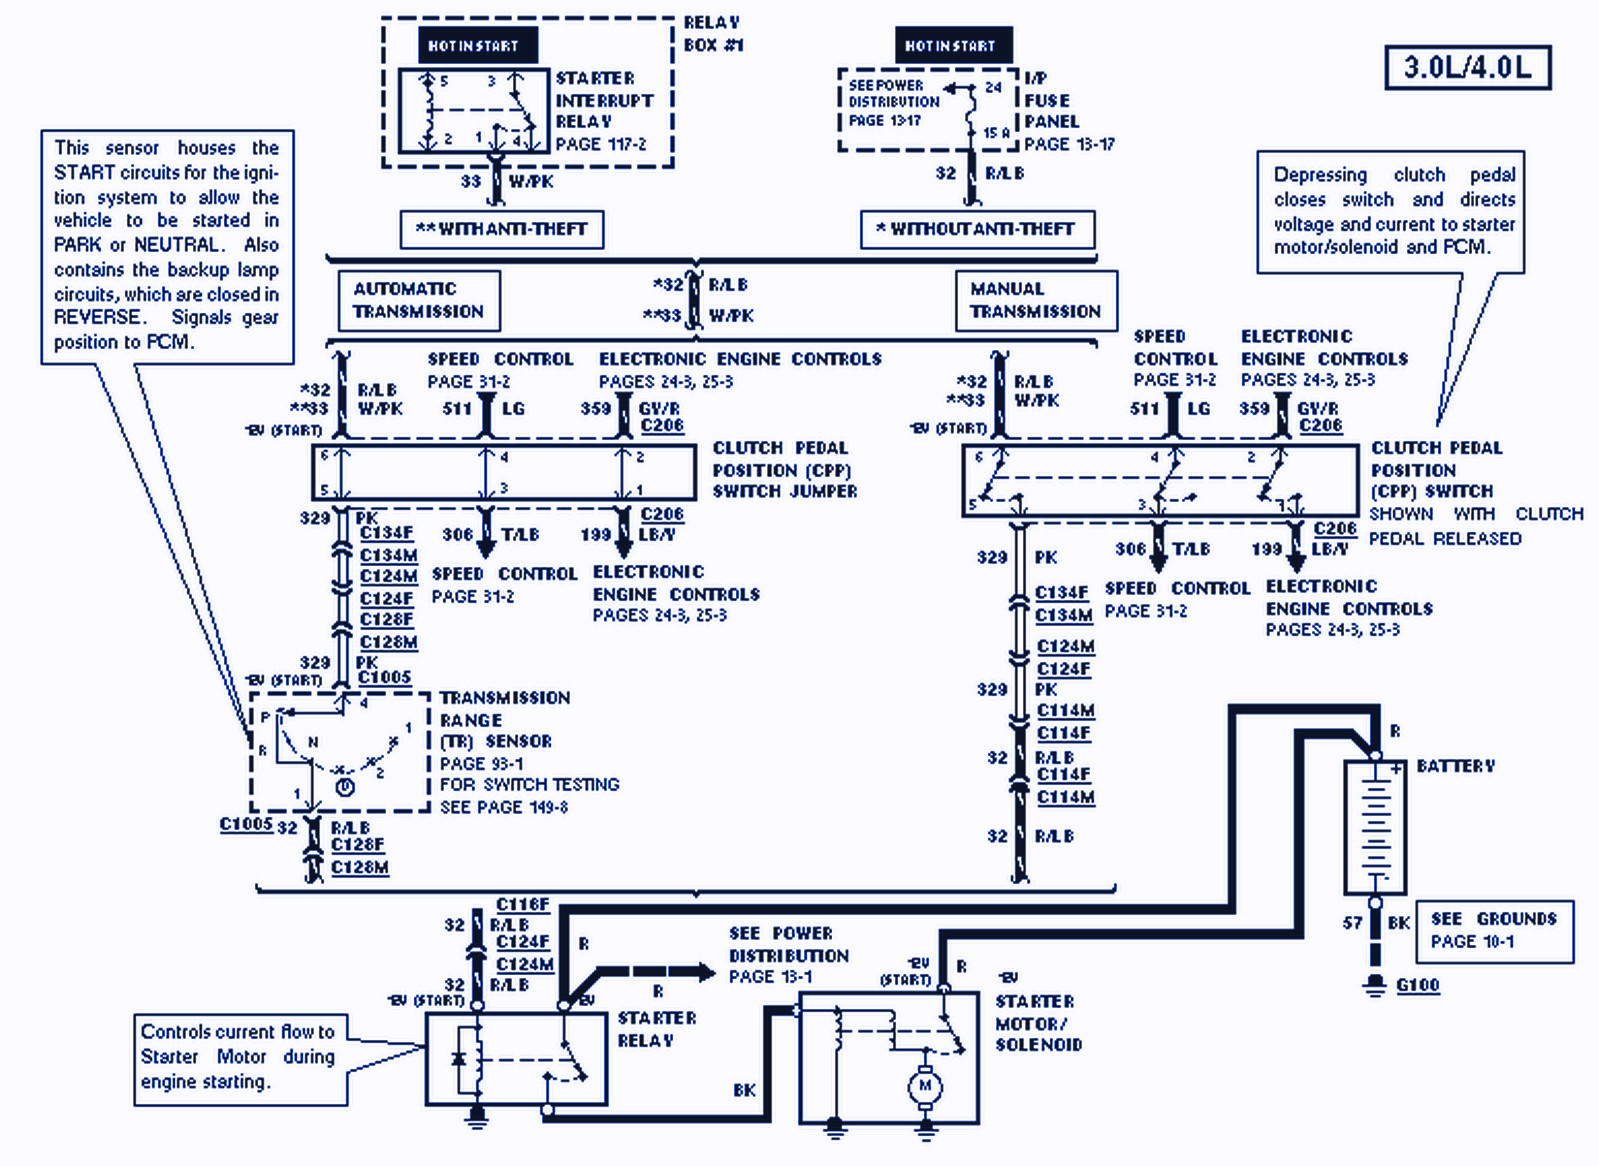 Wiring Diagrams For 1995 Ford Ranger - Wiring Diagram ... on